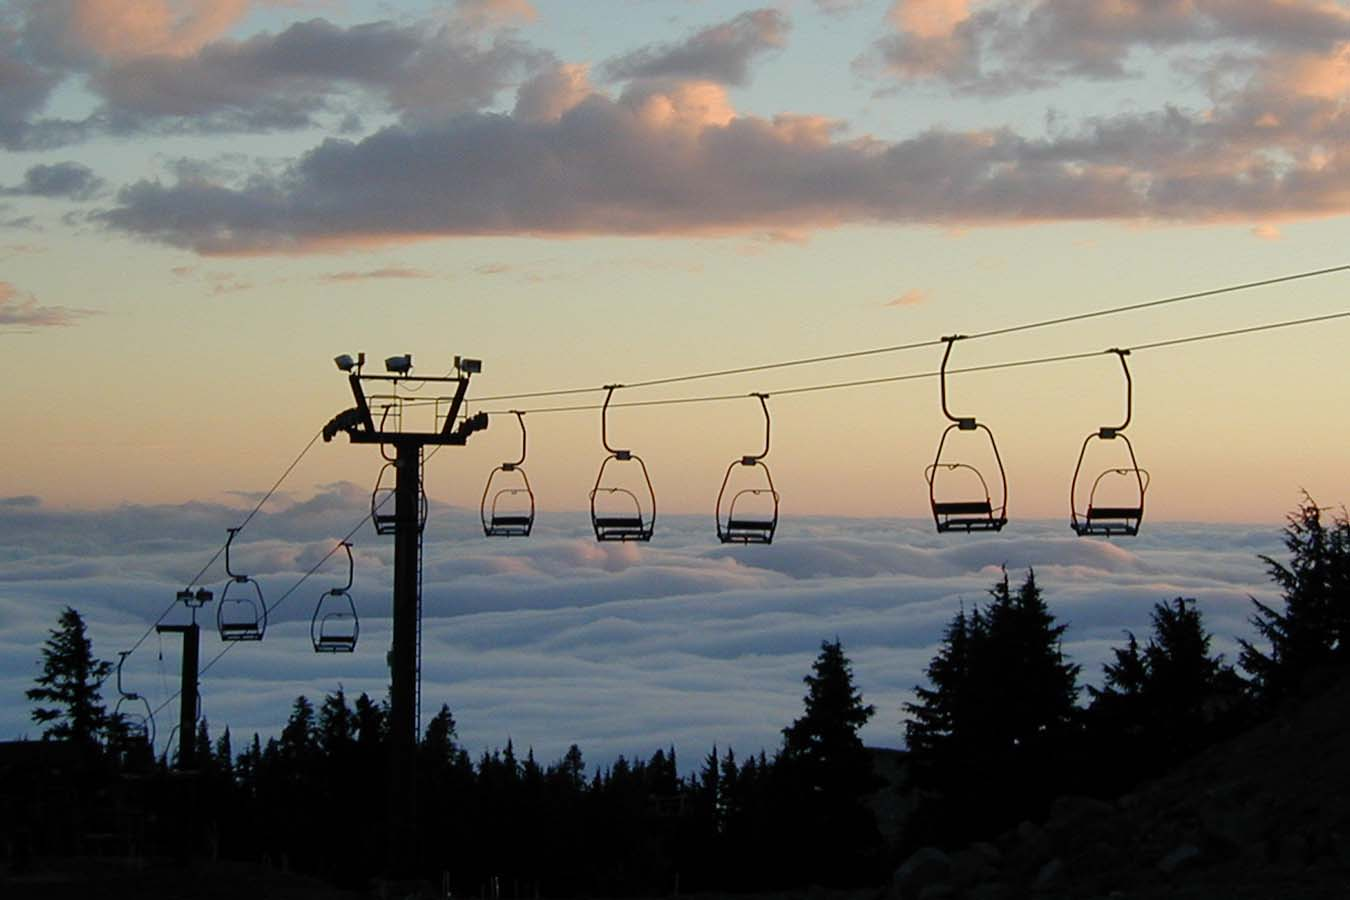 Chairlifts Rise Above Clouds